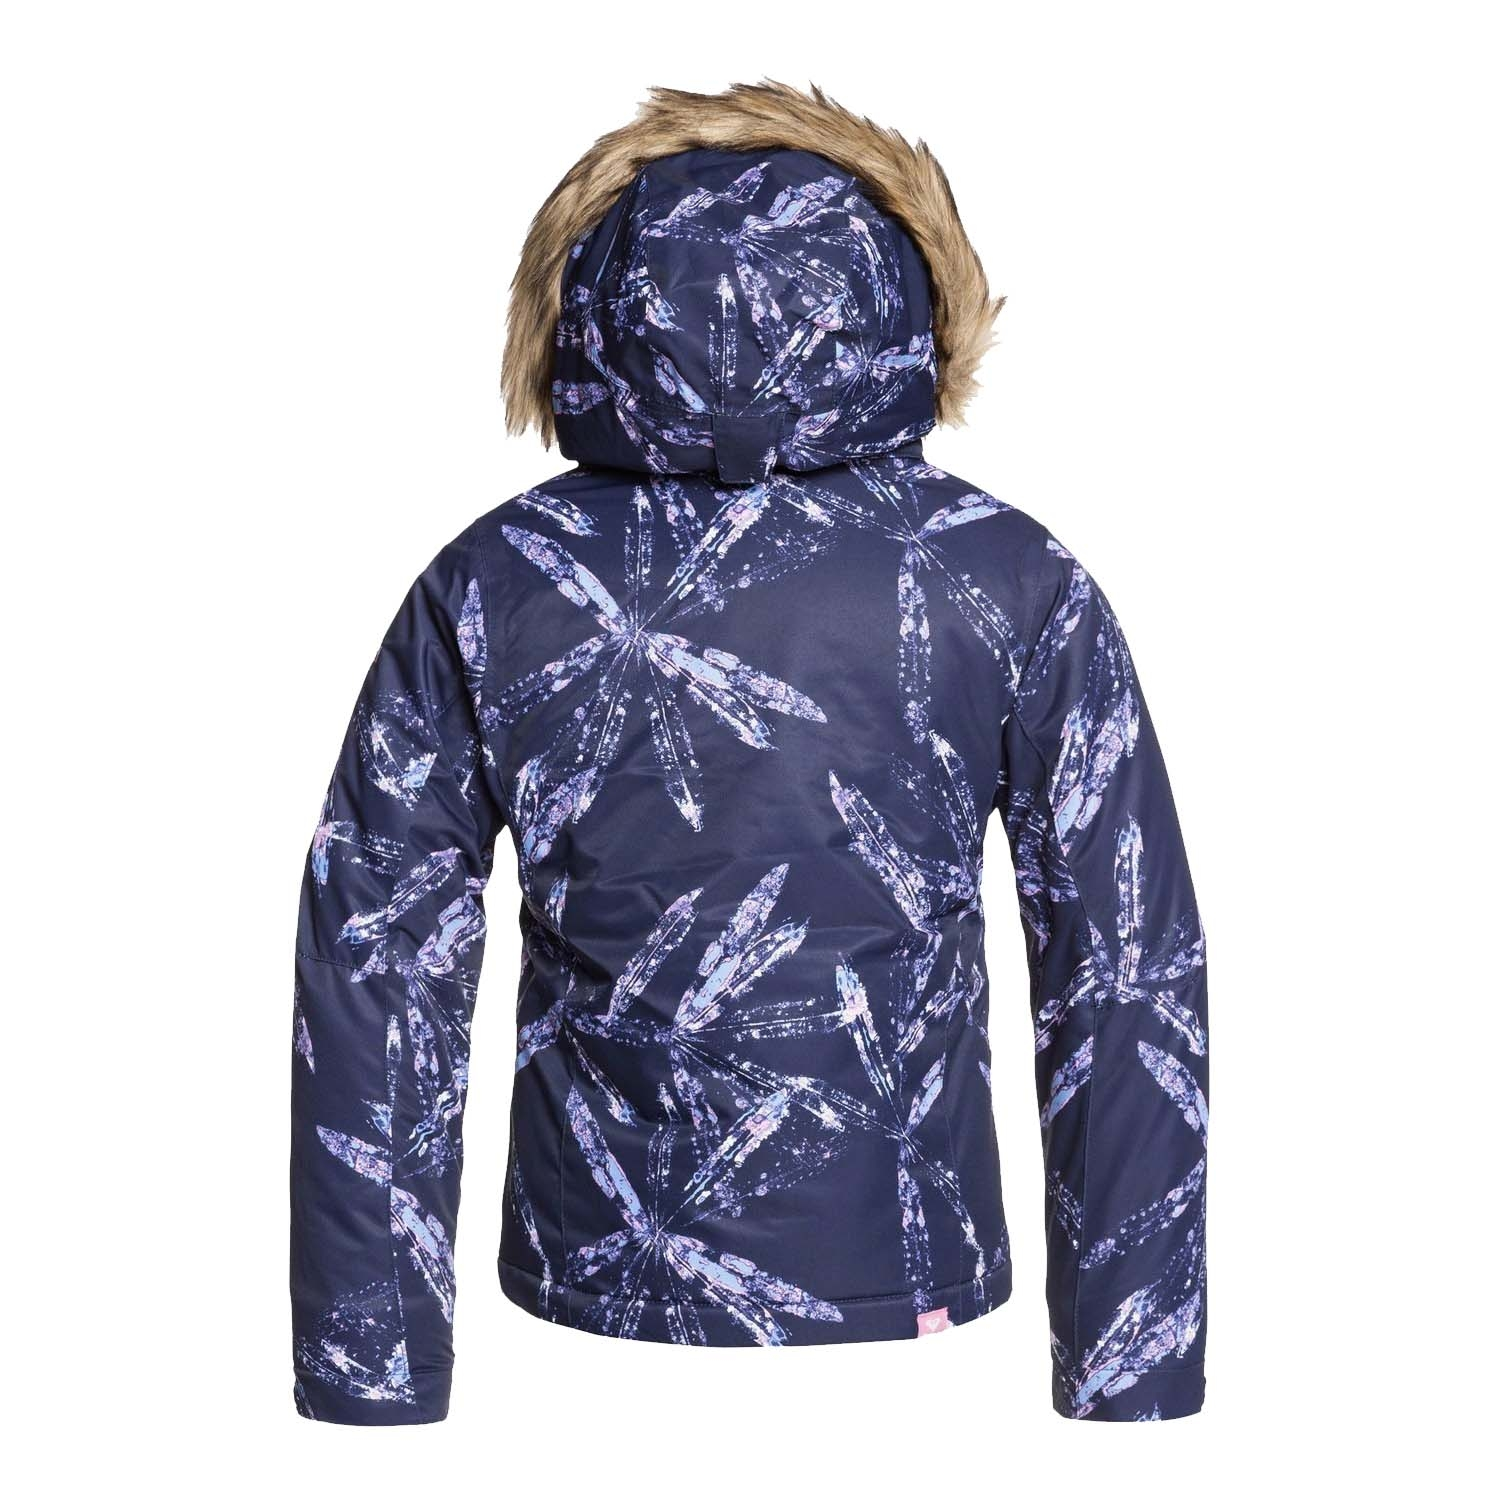 Roxy Jet Ski Girl Jacket Medieval Blue Artic Leaves 2020